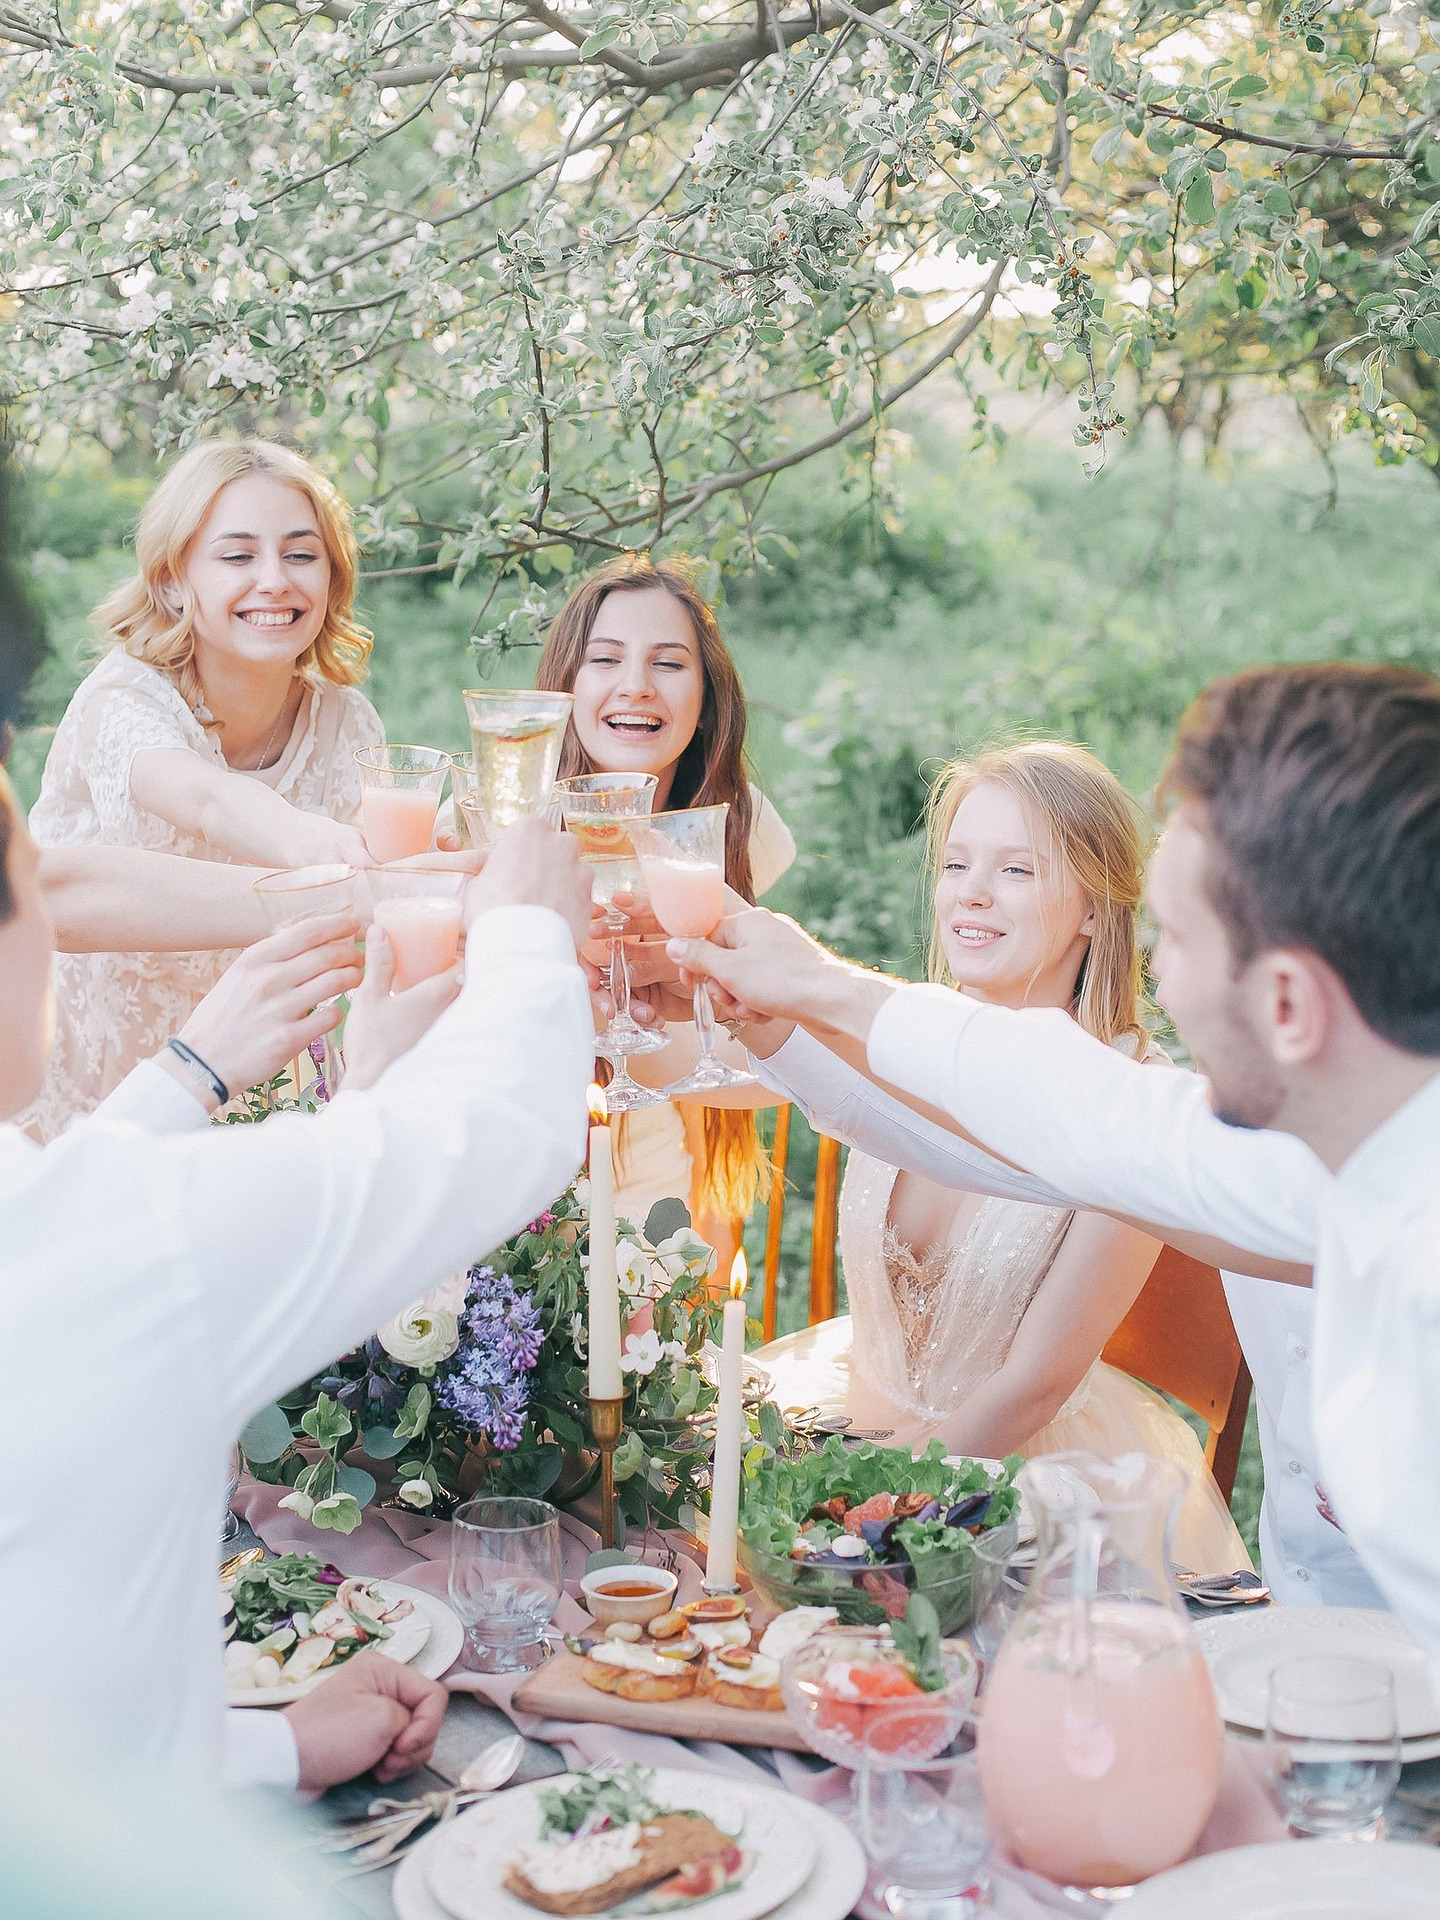 wsmile-food&lifestyle-picknick-friends-family-food